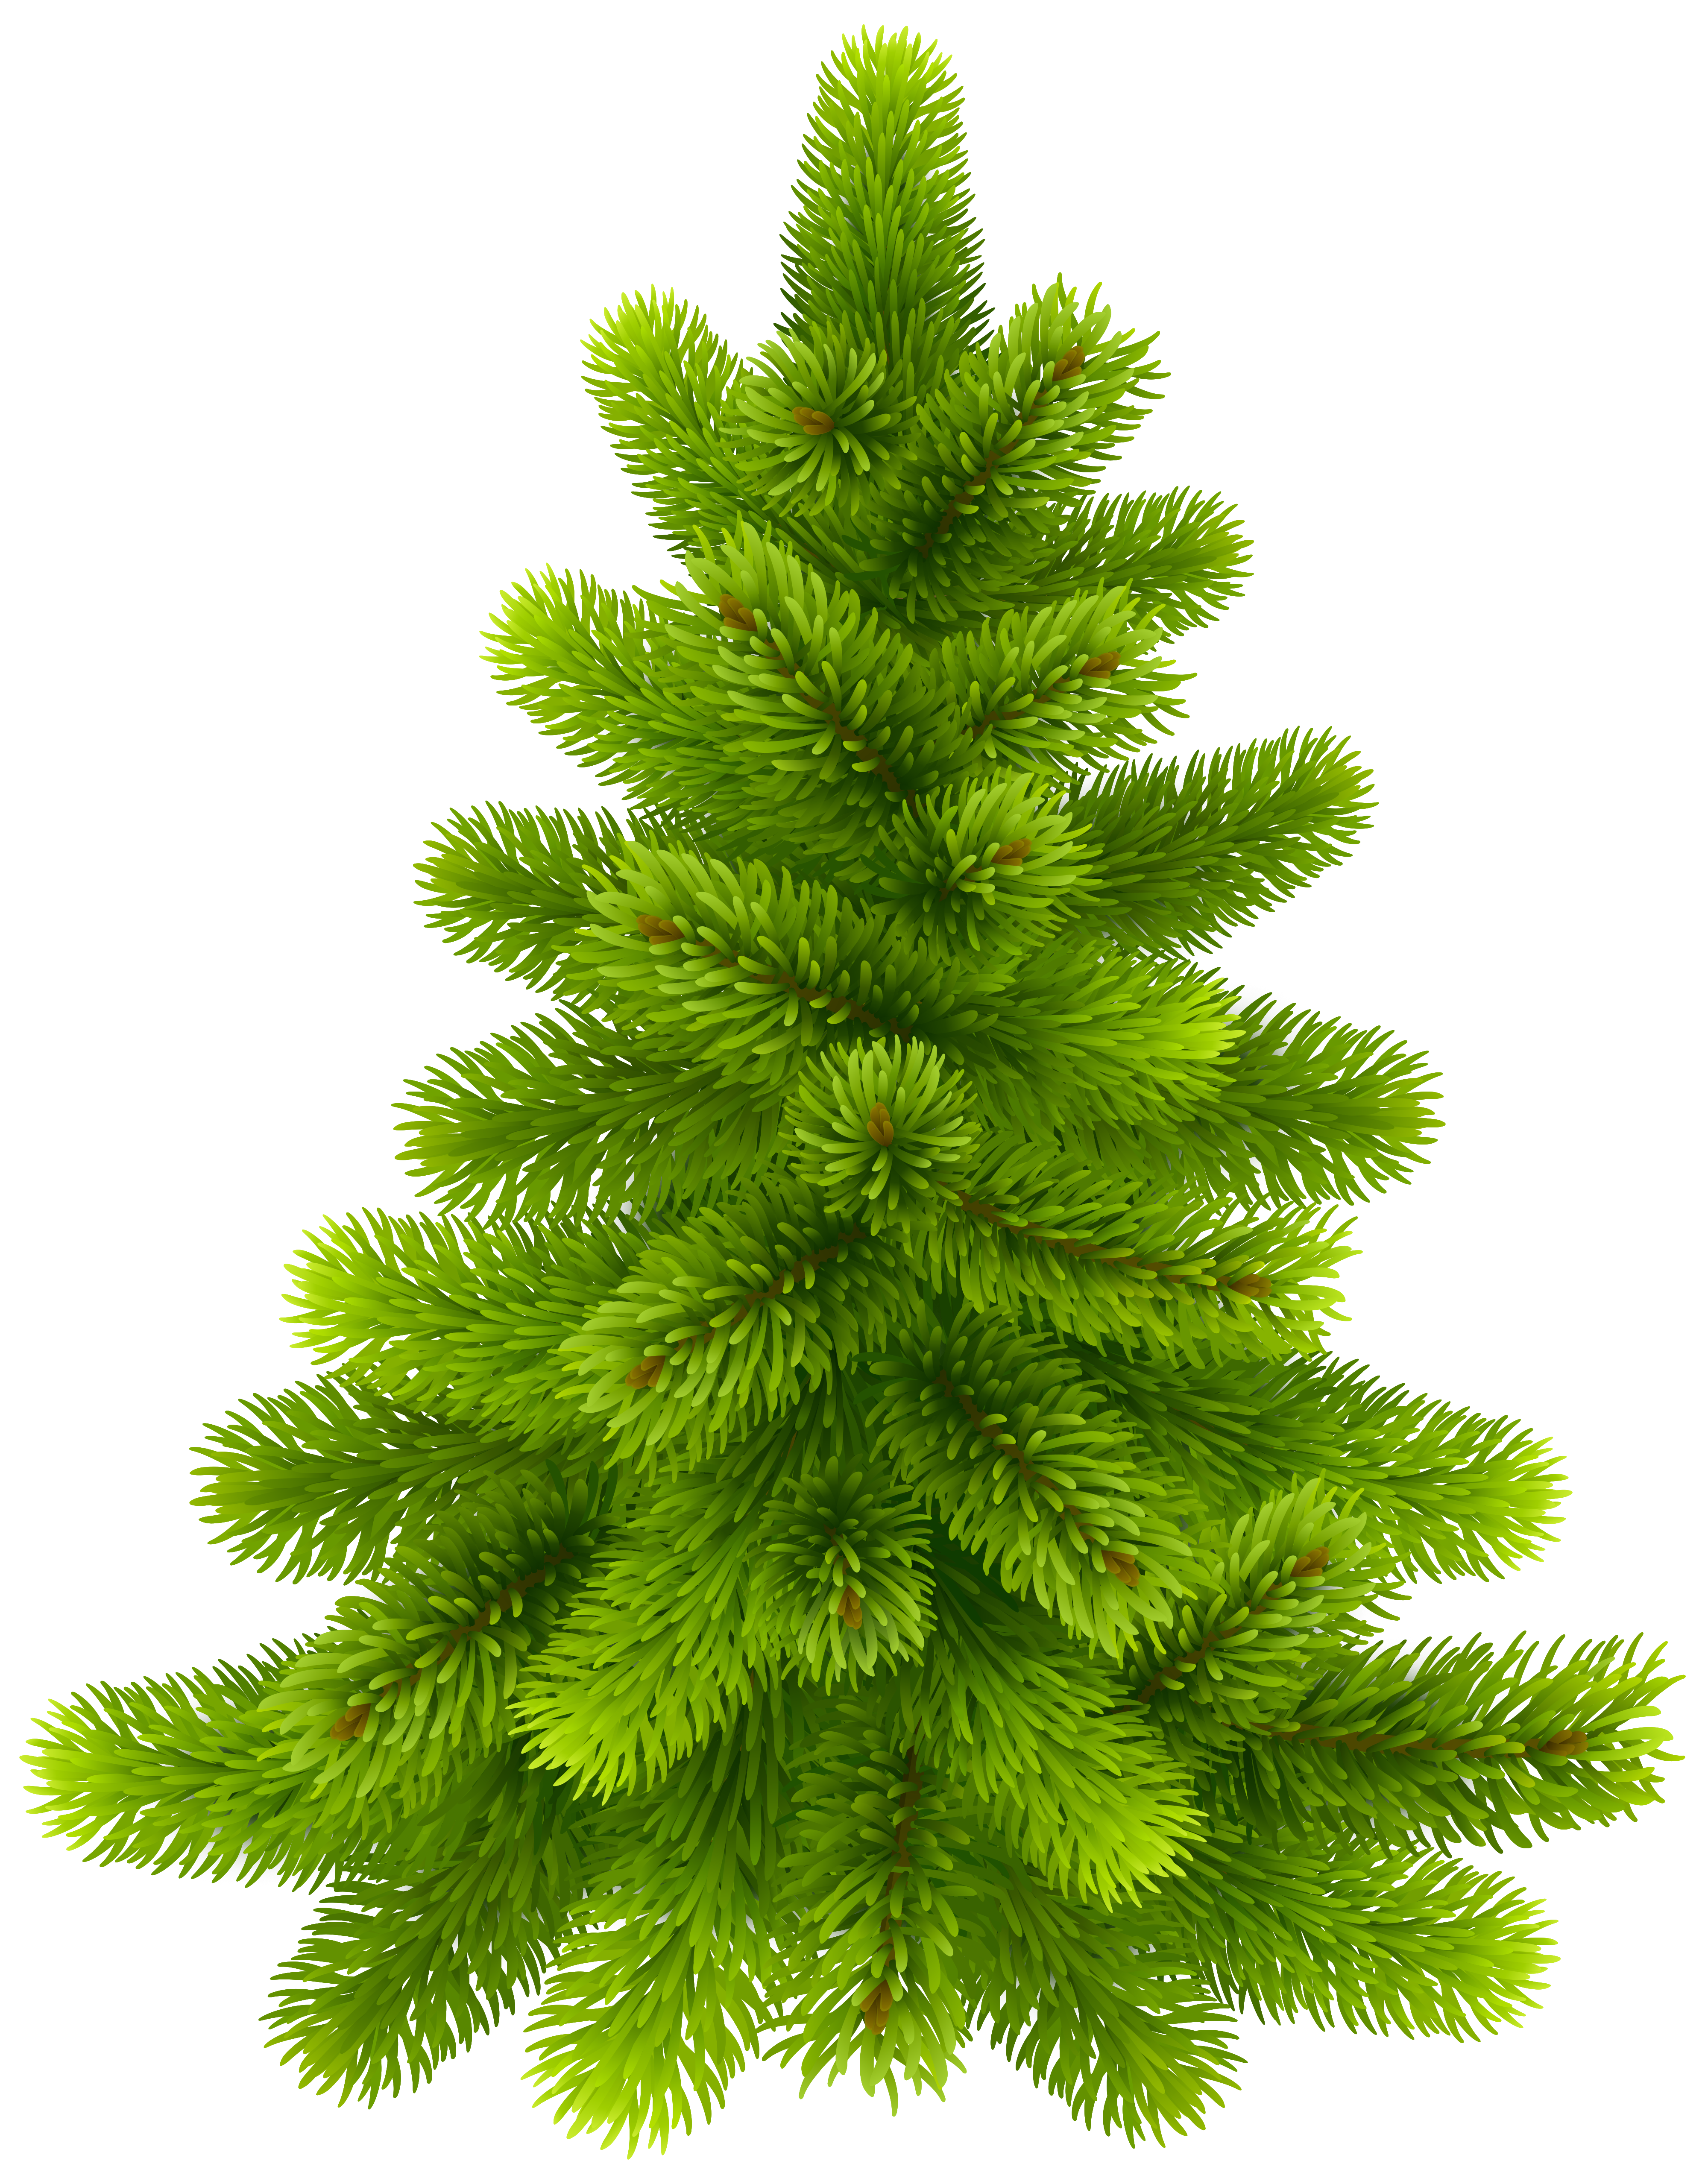 Tree clip art best. Pine trees png clipart black and white stock